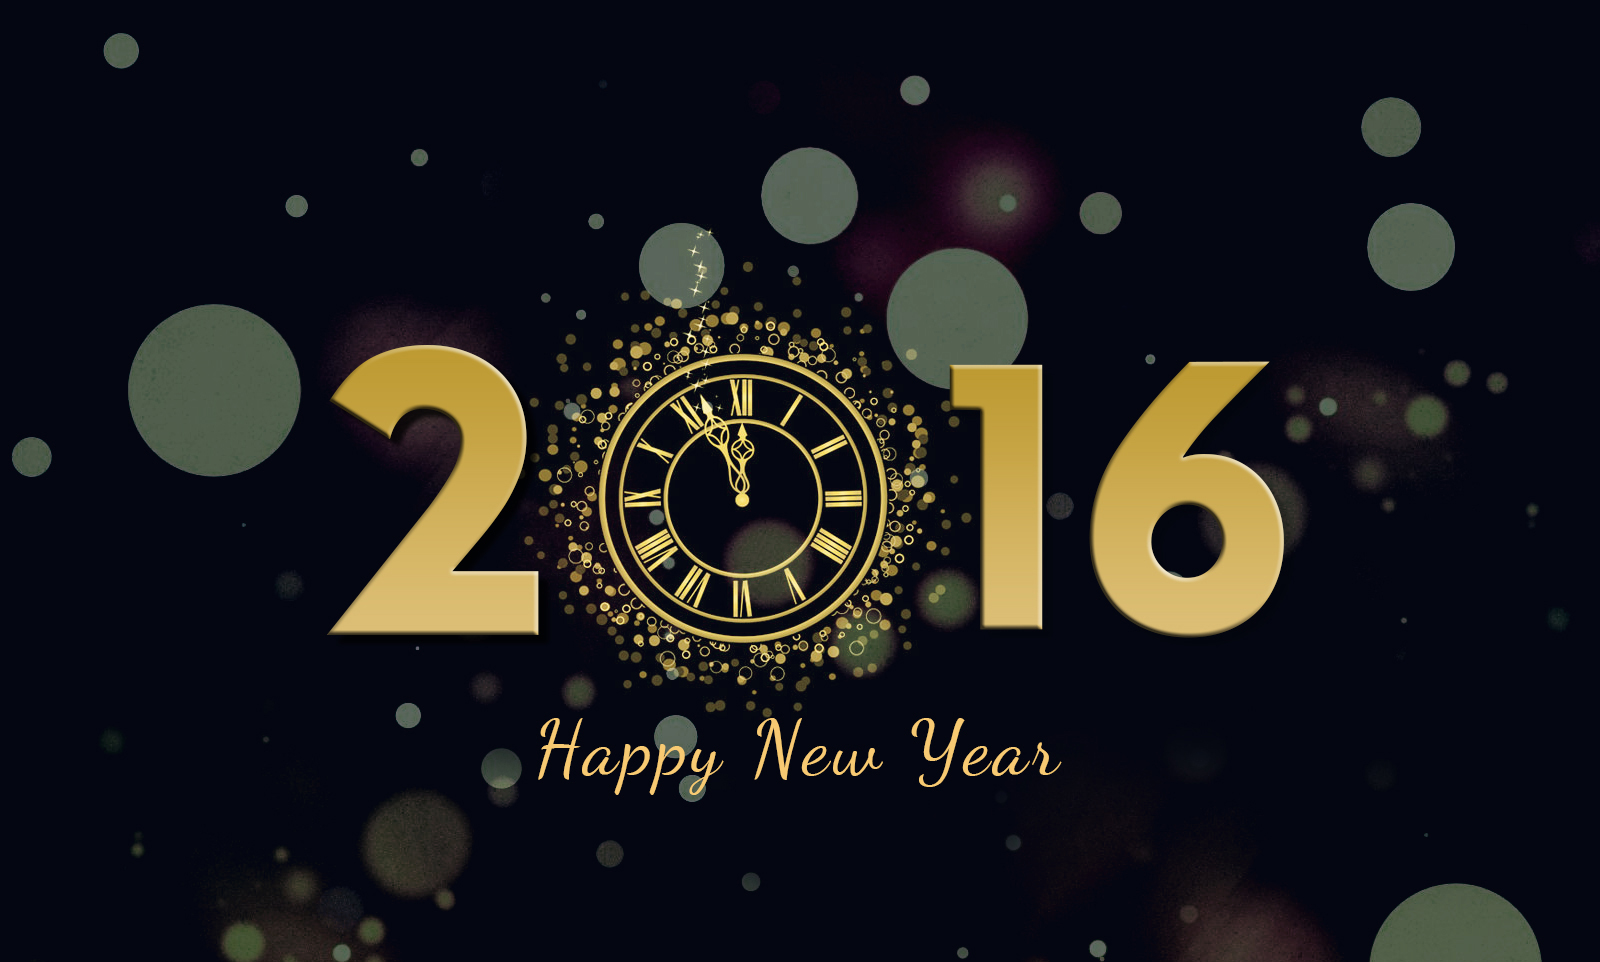 Happy New Year 2016 Background Images Quotes Square